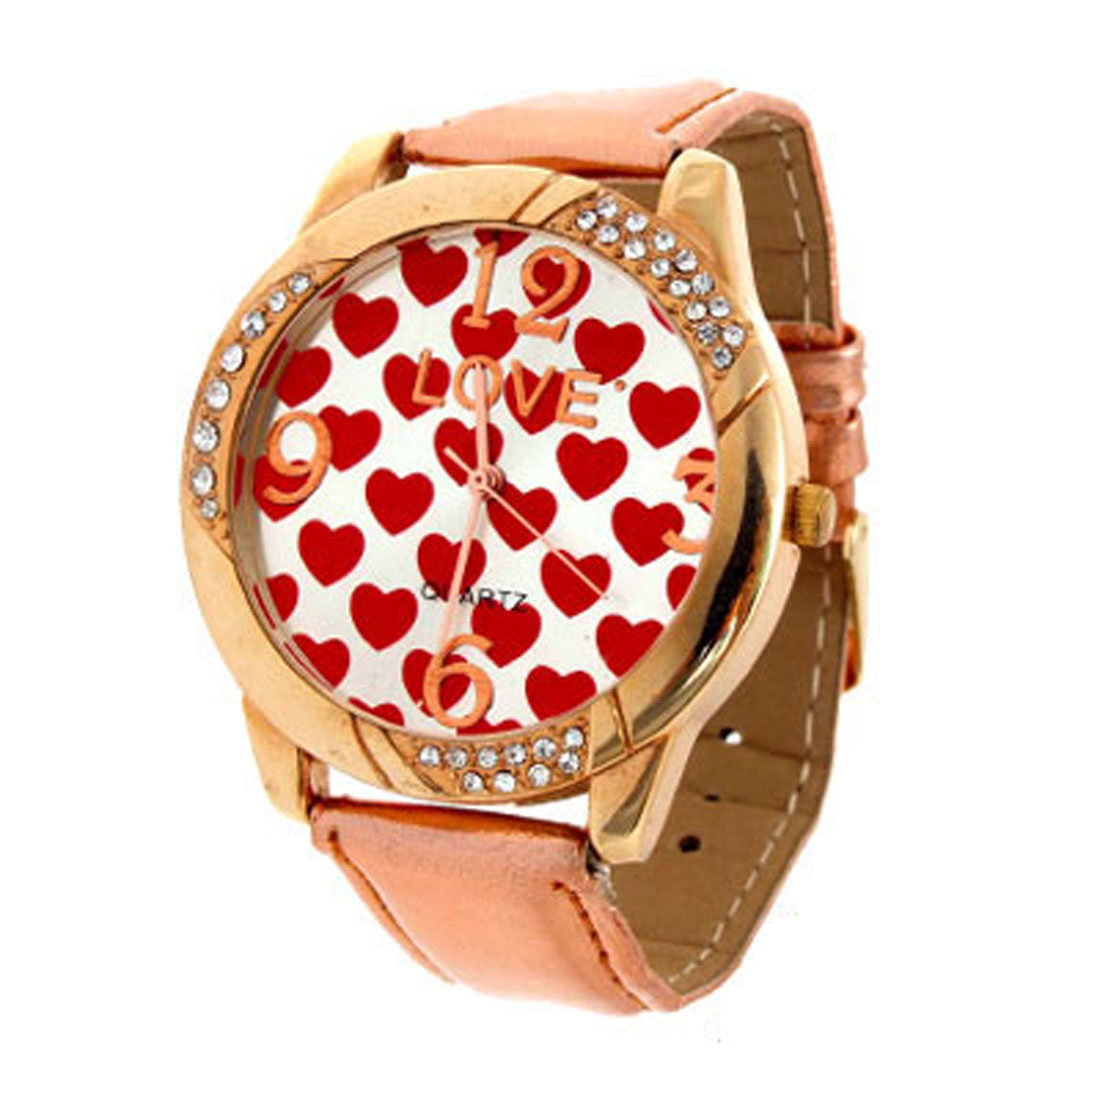 Fashion Jewelry Red Hearts Love Quartz Wrist Time Watch